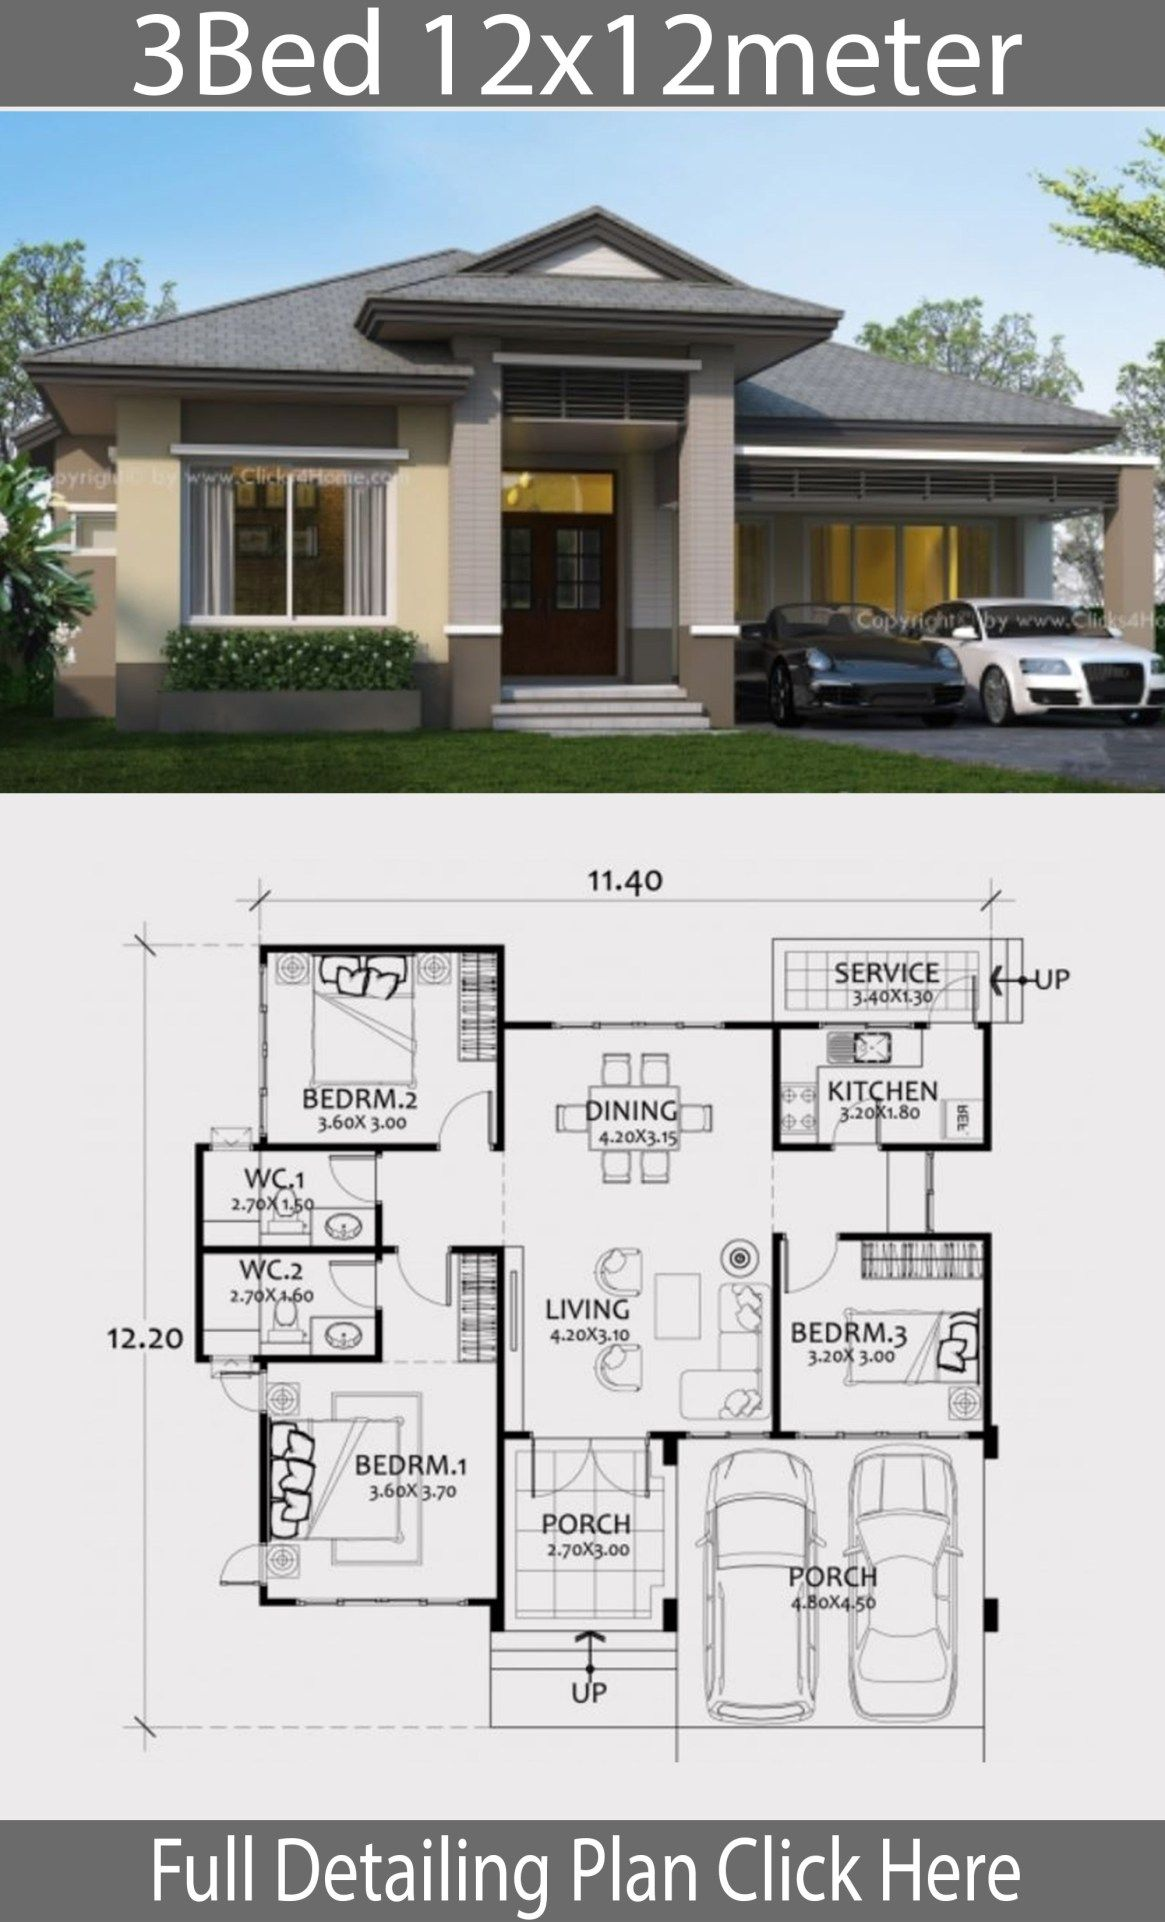 Home Design Plan 12x12m With 3 Bedrooms Home Design With Plansearch Modern Bungalow House Beautiful House Plans House Plan Gallery